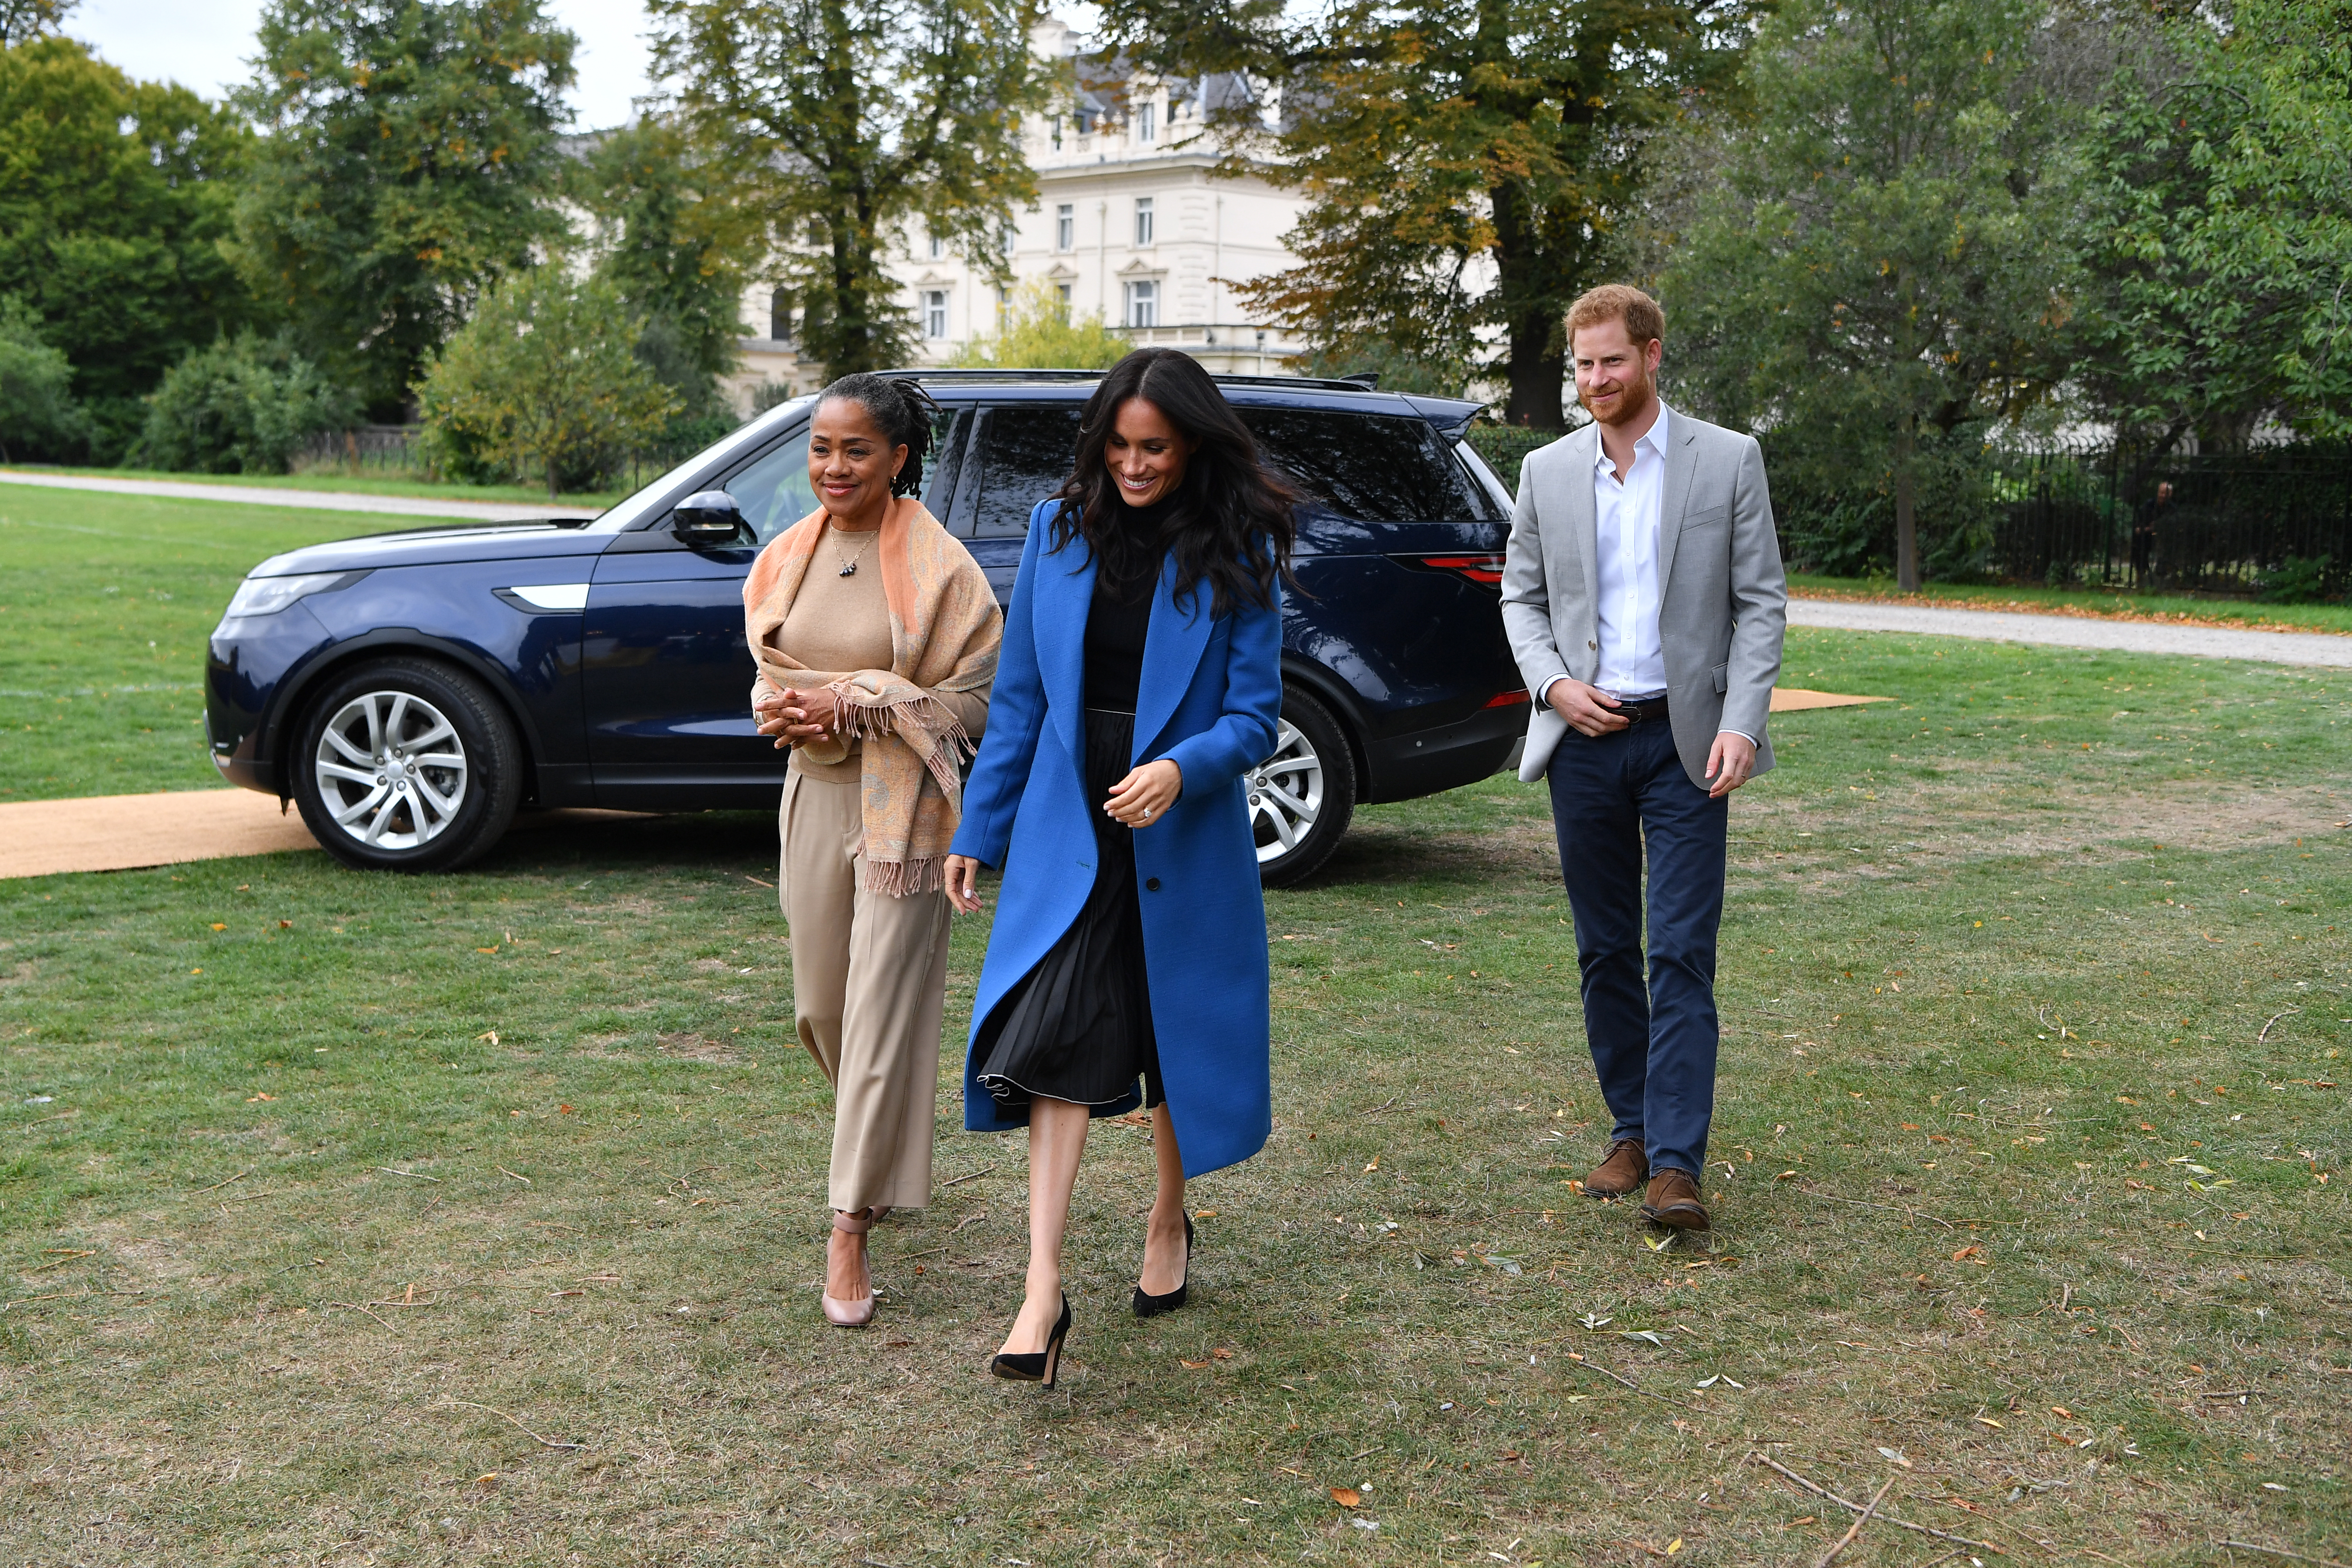 Meghan, Duchess of Sussex (C) arrives with her mother Doria Ragland (L) and Prince Harry, Duke of Sussex to host an event to mark the launch of a cookbook with recipes from a group of women affected by the Grenfell Tower fire at Kensington Palace on September 20, 2018 in London, England.